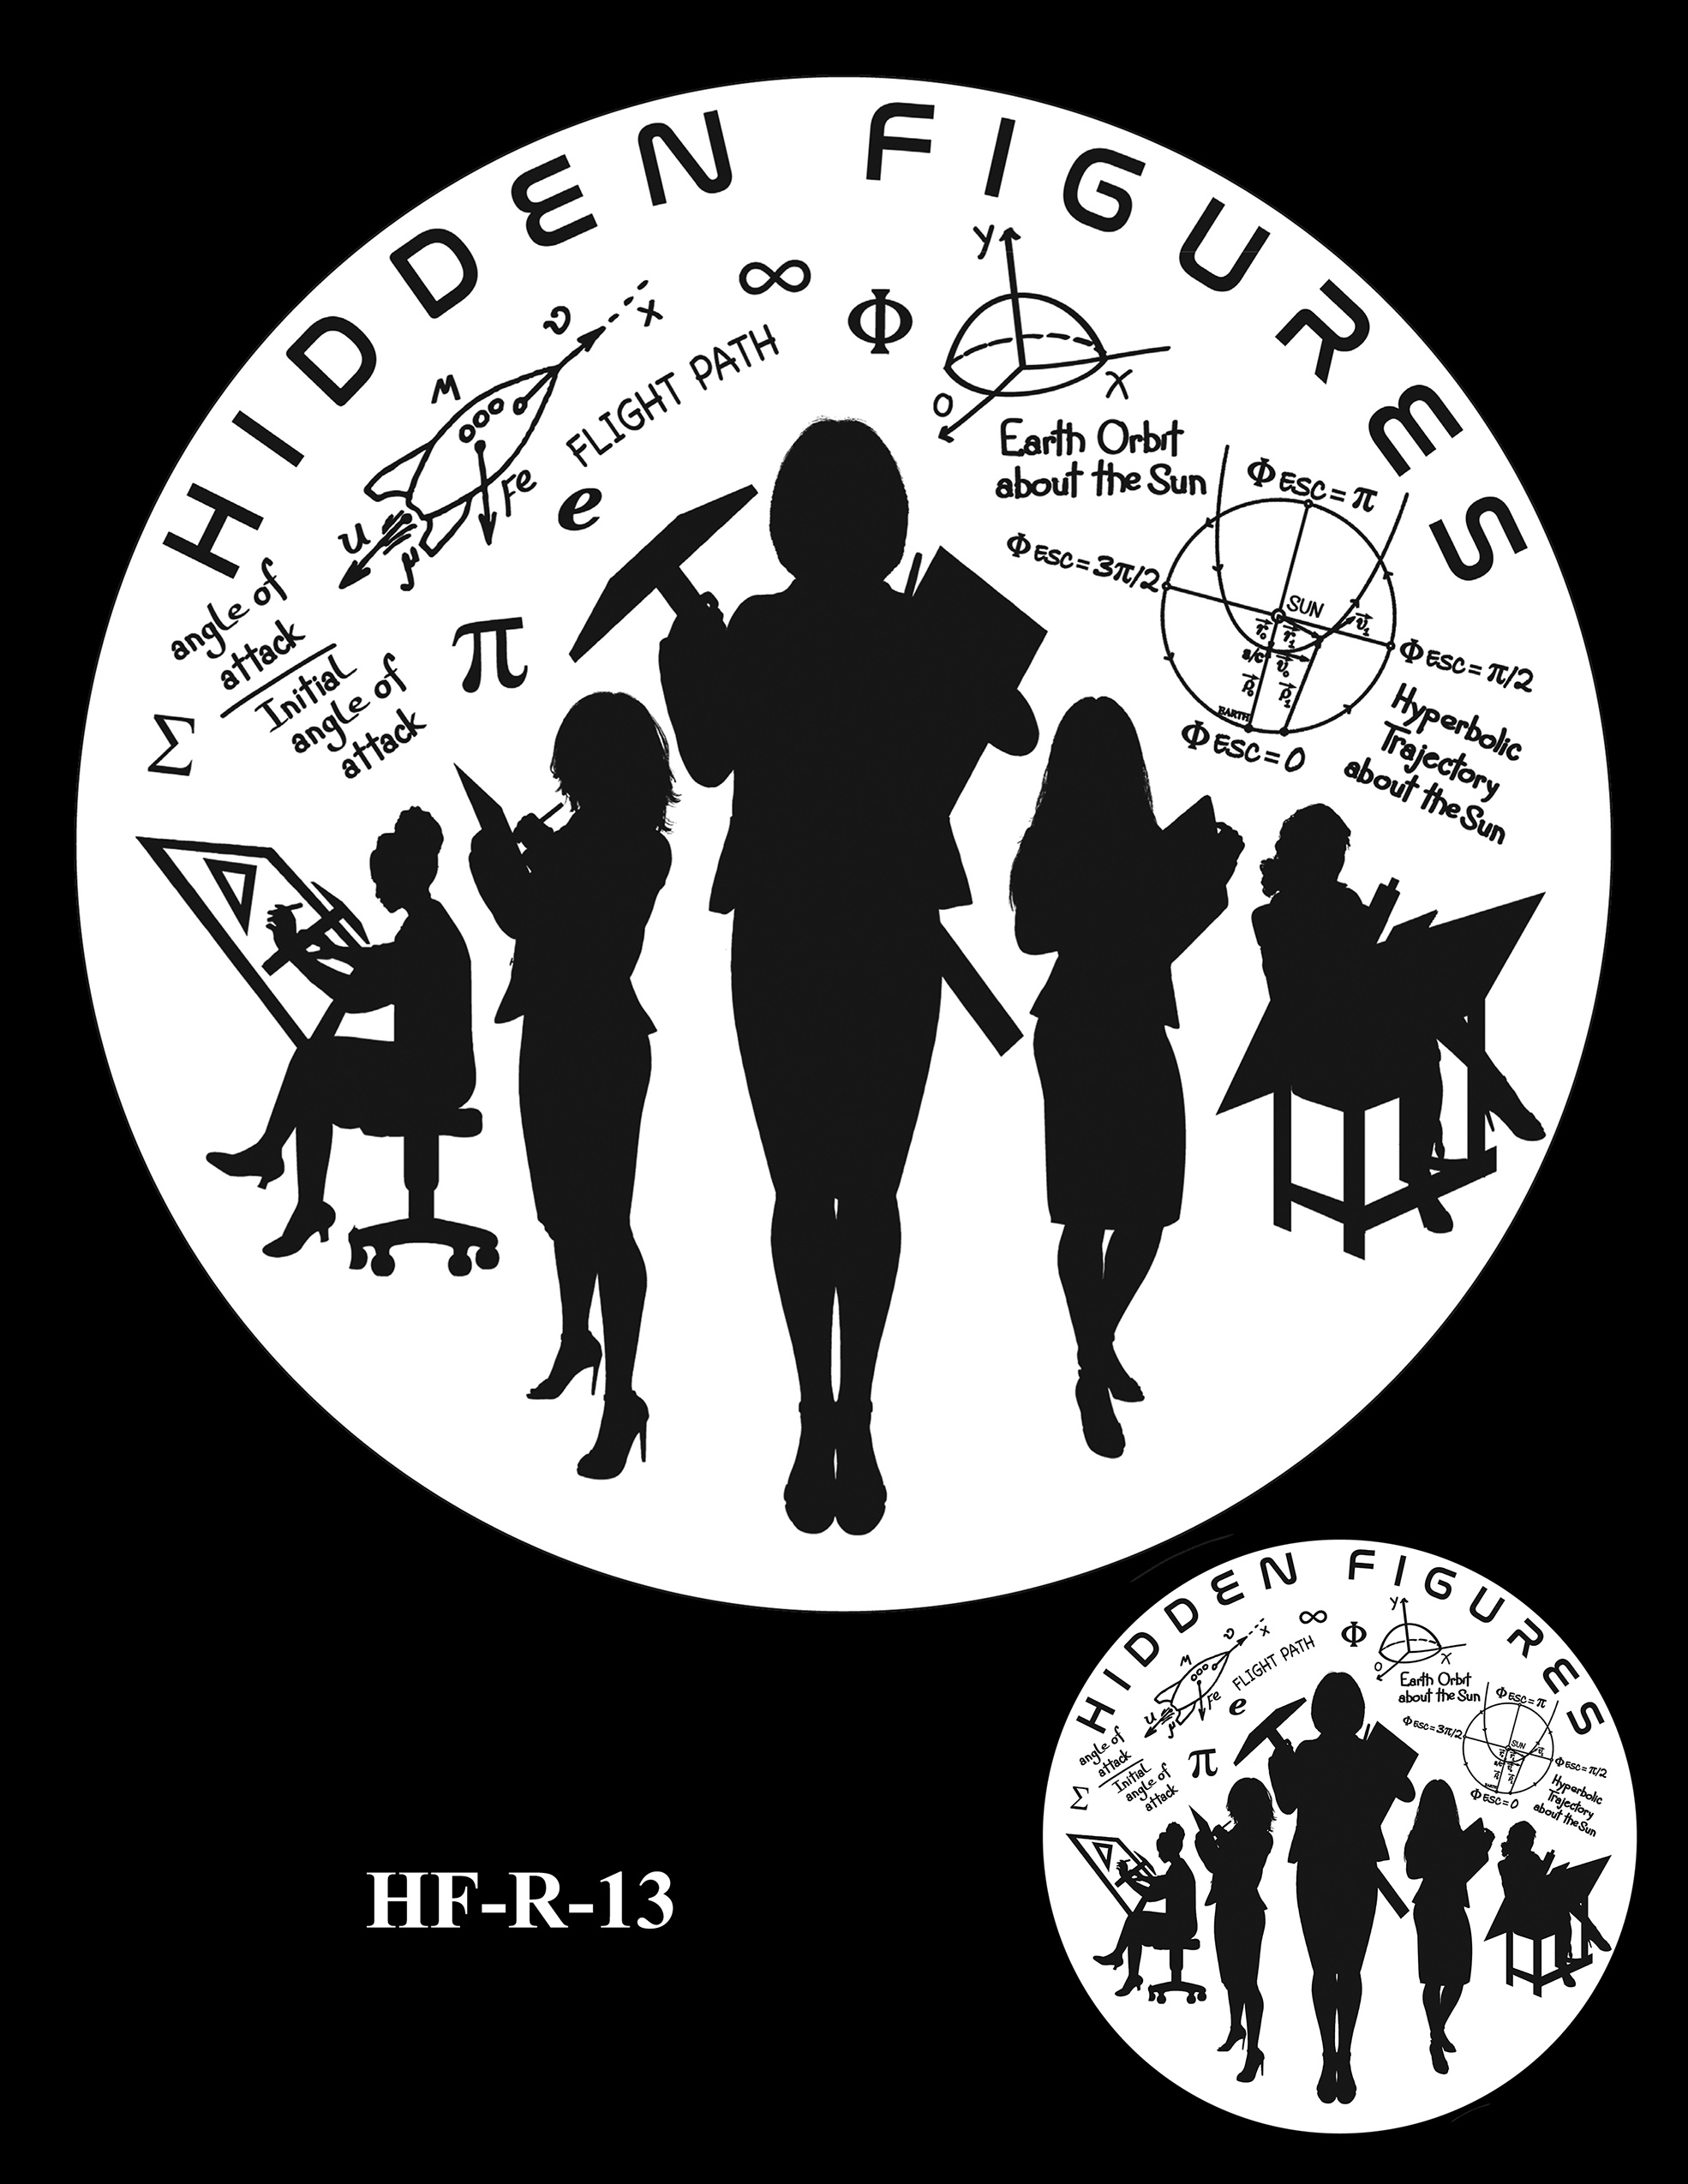 HF-R-13 -- Hidden Figures Group Congressional Gold Medal